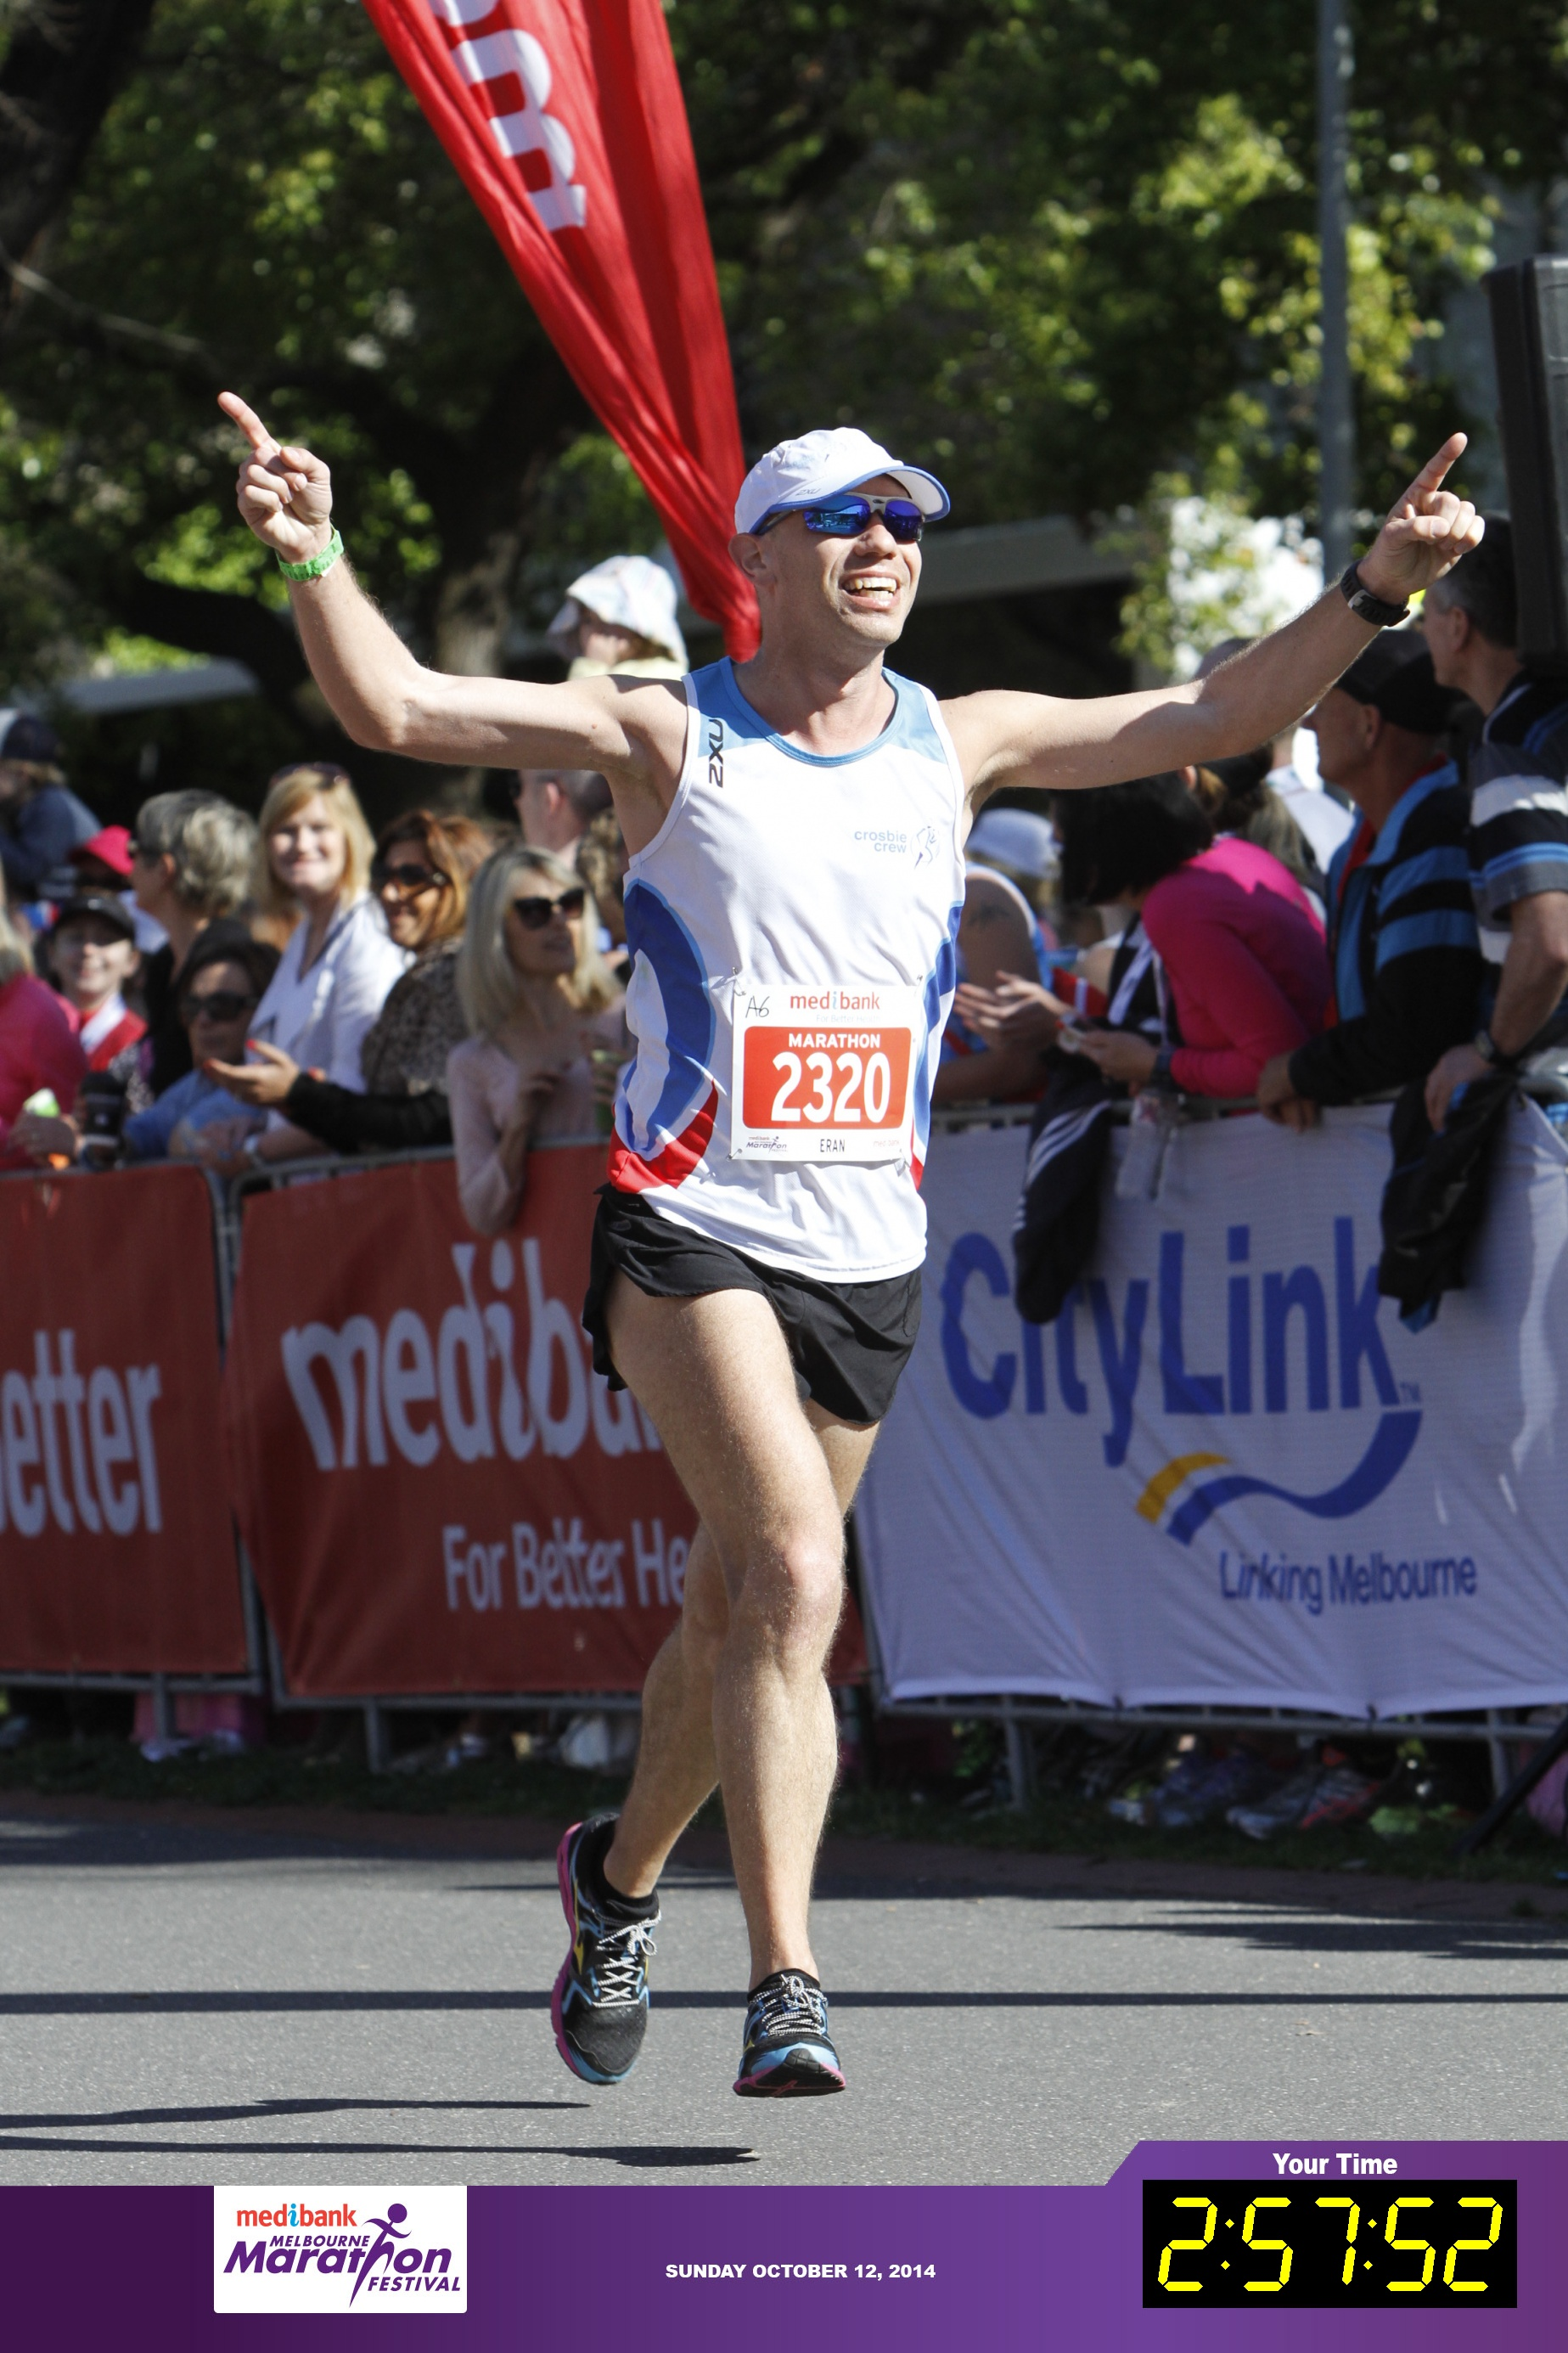 Melbourne Marathon 2014 - The three hours barrier